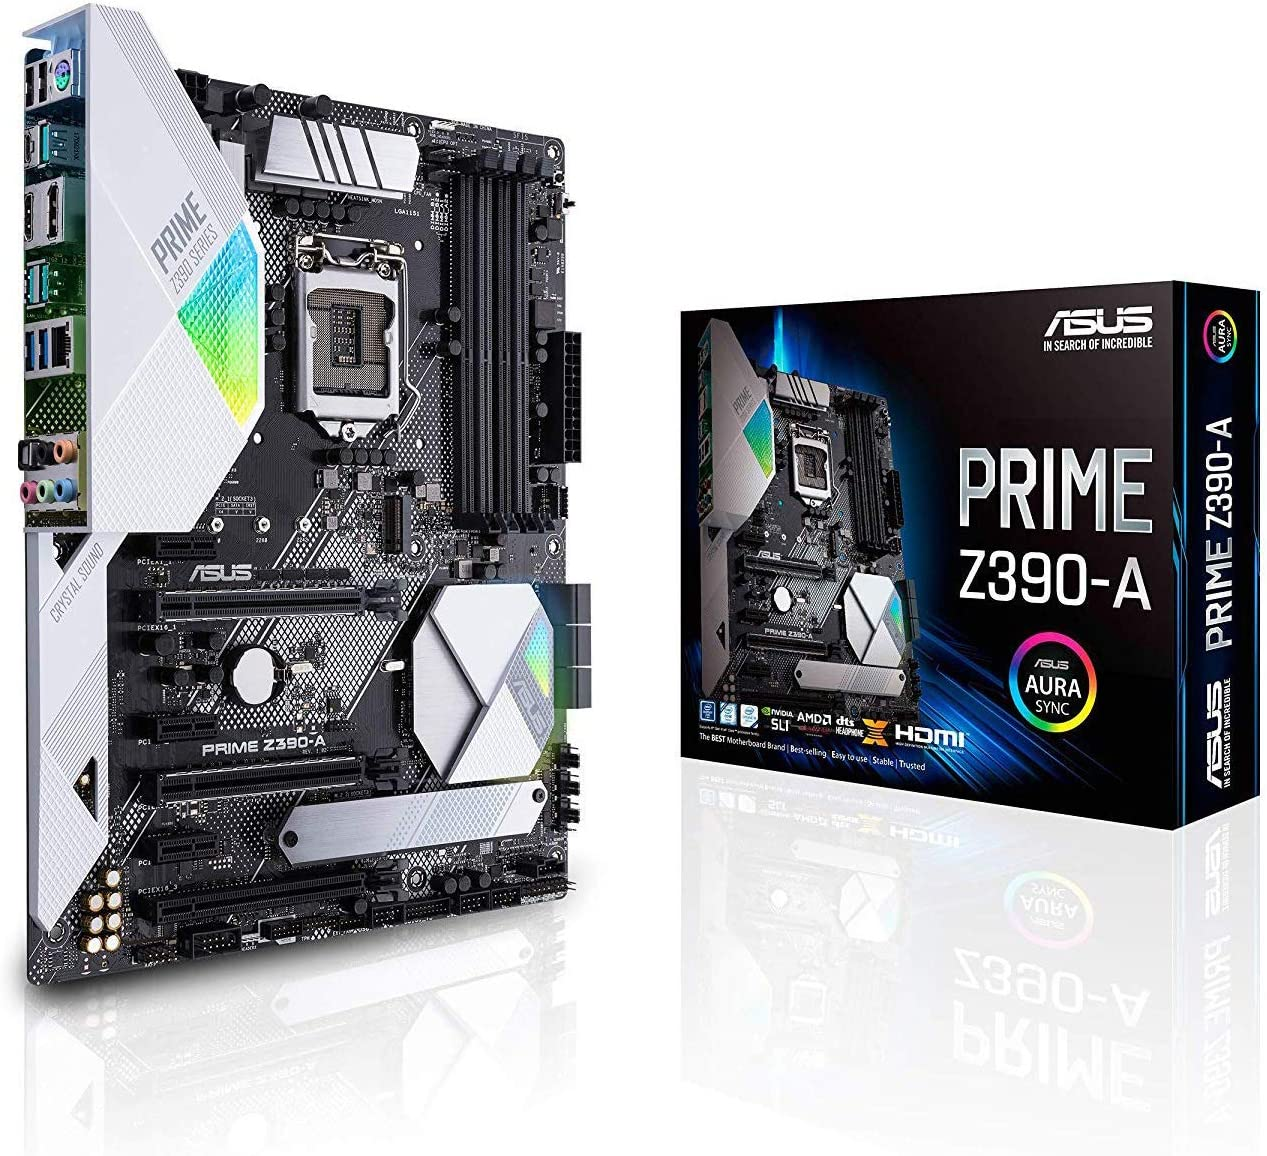 Amazon Com Asus Prime Z390 A Motherboard Lga1151 Intel 8th And 9th Gen Atx Ddr4 Dp Hdmi M 2 Usb 3 1 Gen2 Gigabit Lan Computers Accessories